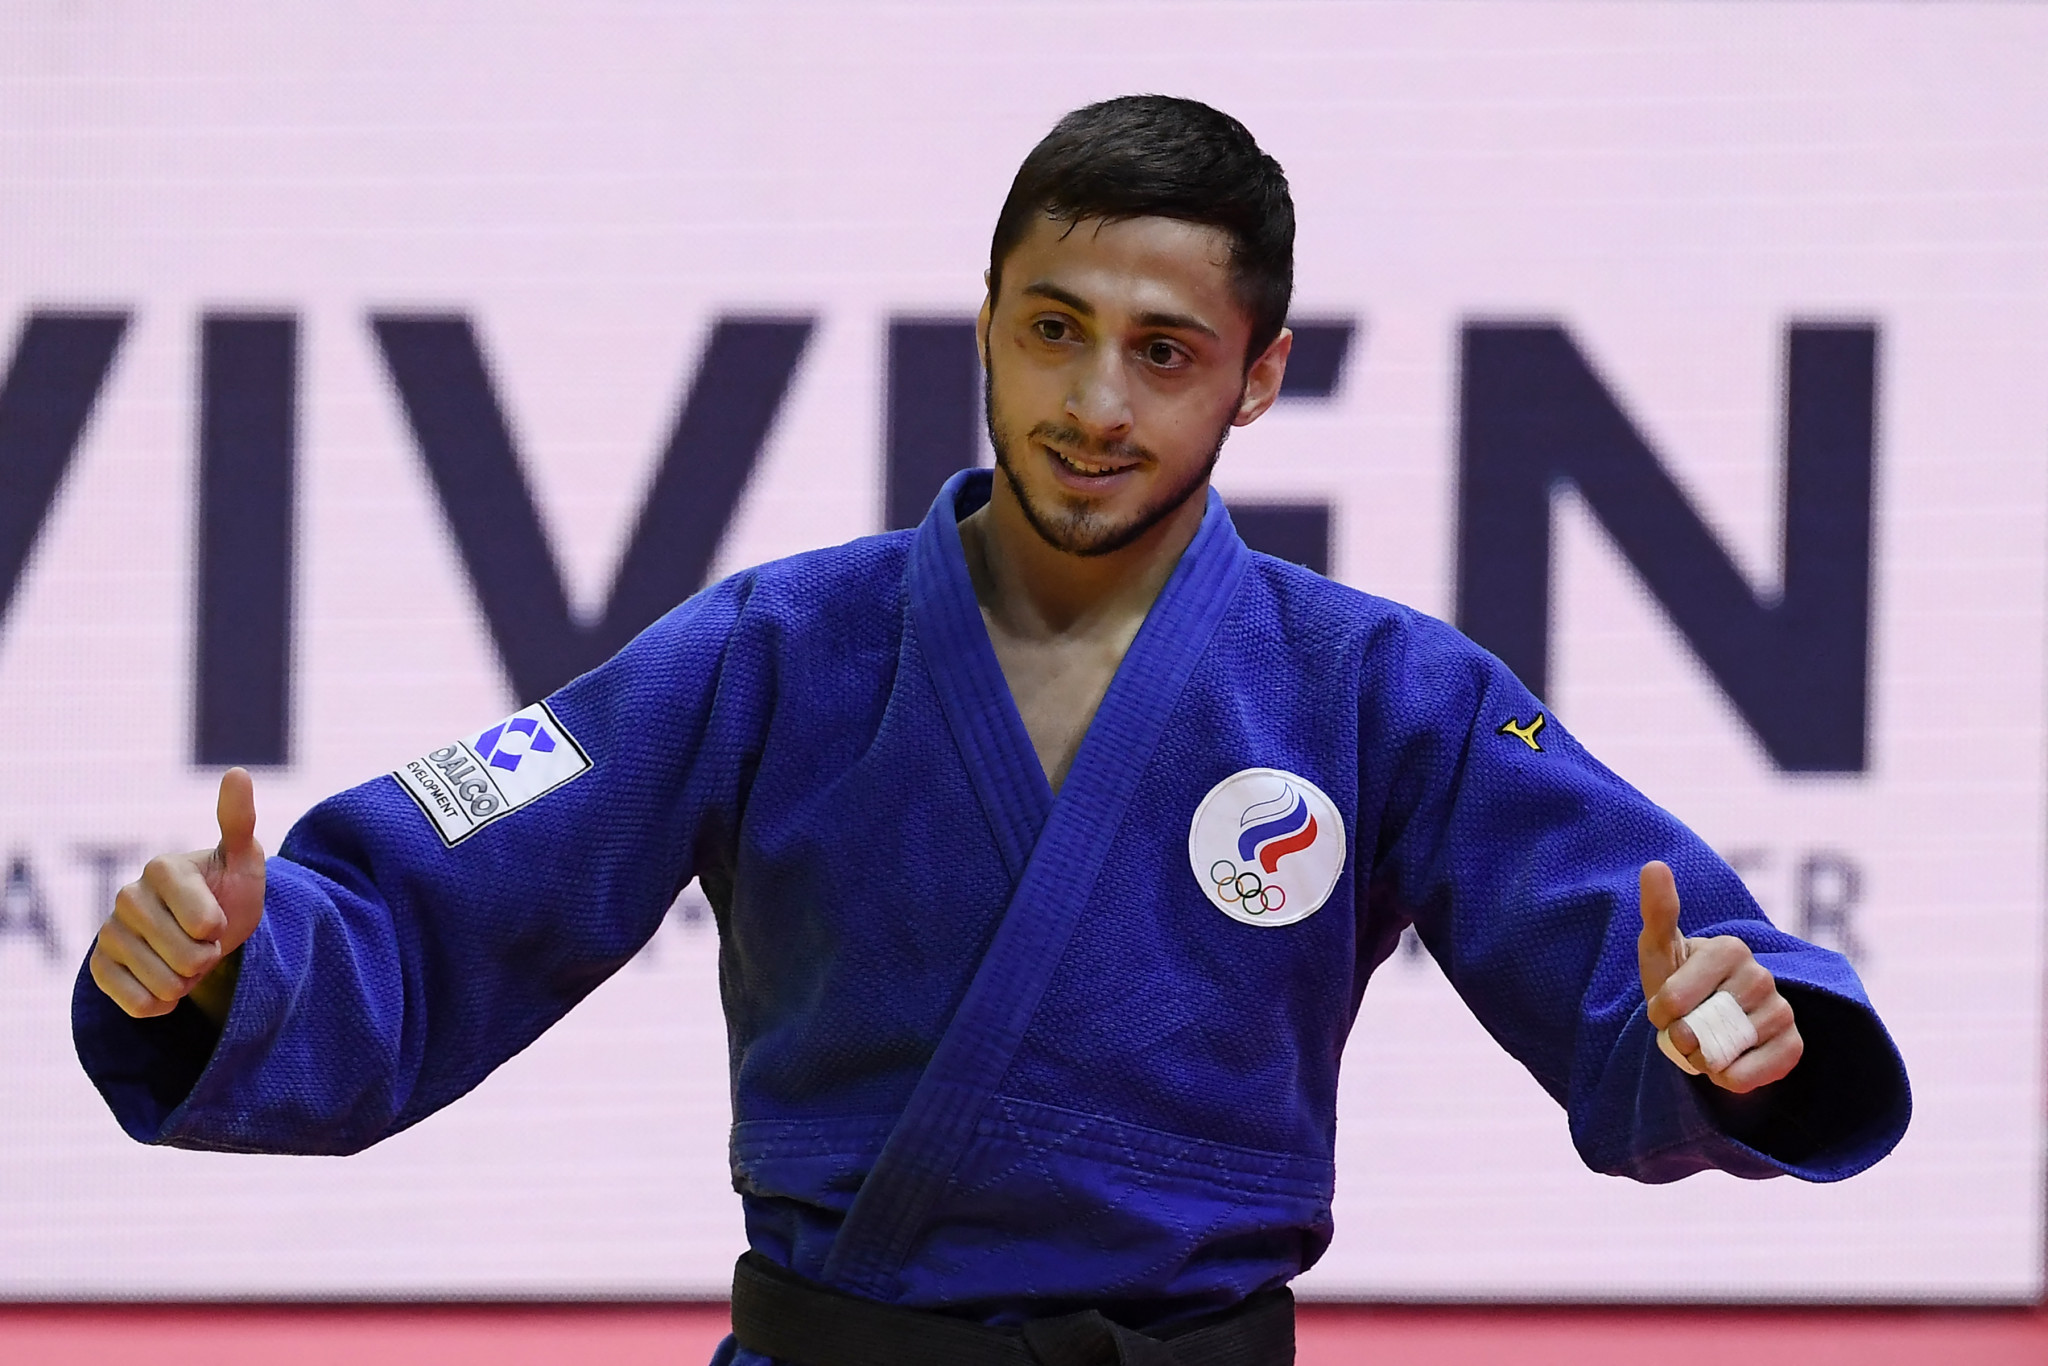 Yago Abuladze will also compete in Zagreb as a reigning world champion ©Getty Images